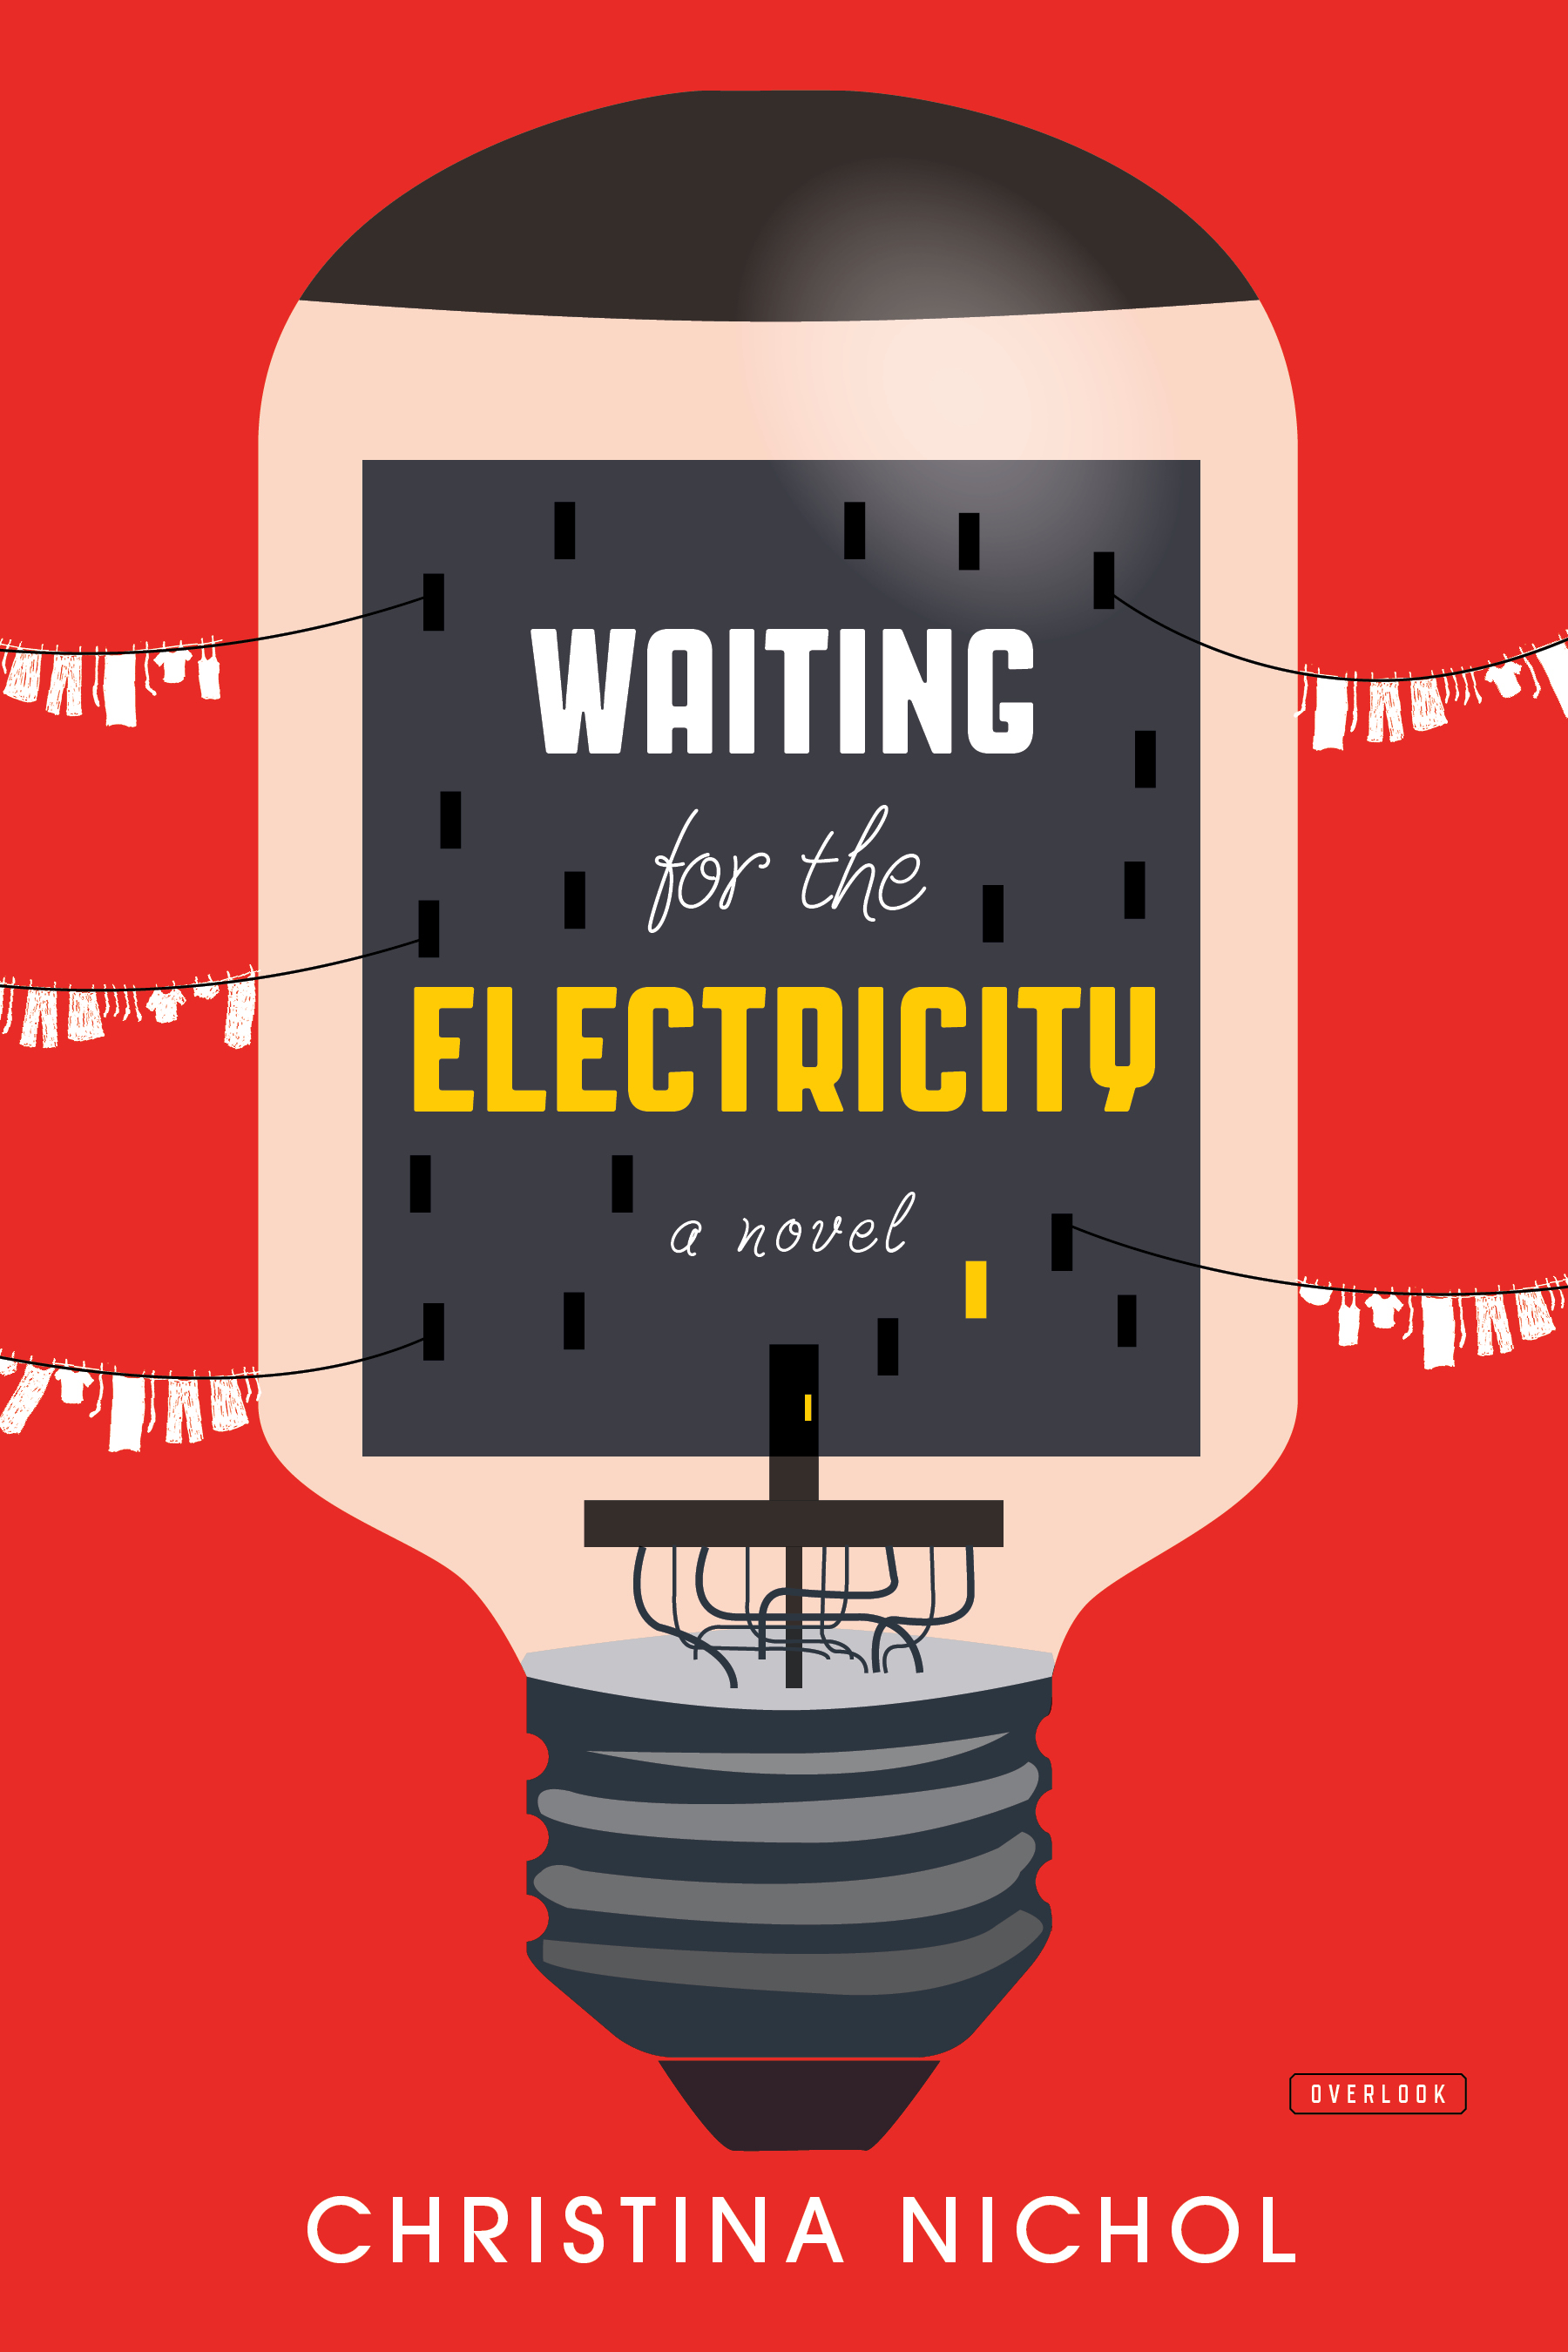 Reading & Discussion: Waiting for the Electricity by Christina Nichol, with Norman Rush and Marco Roth